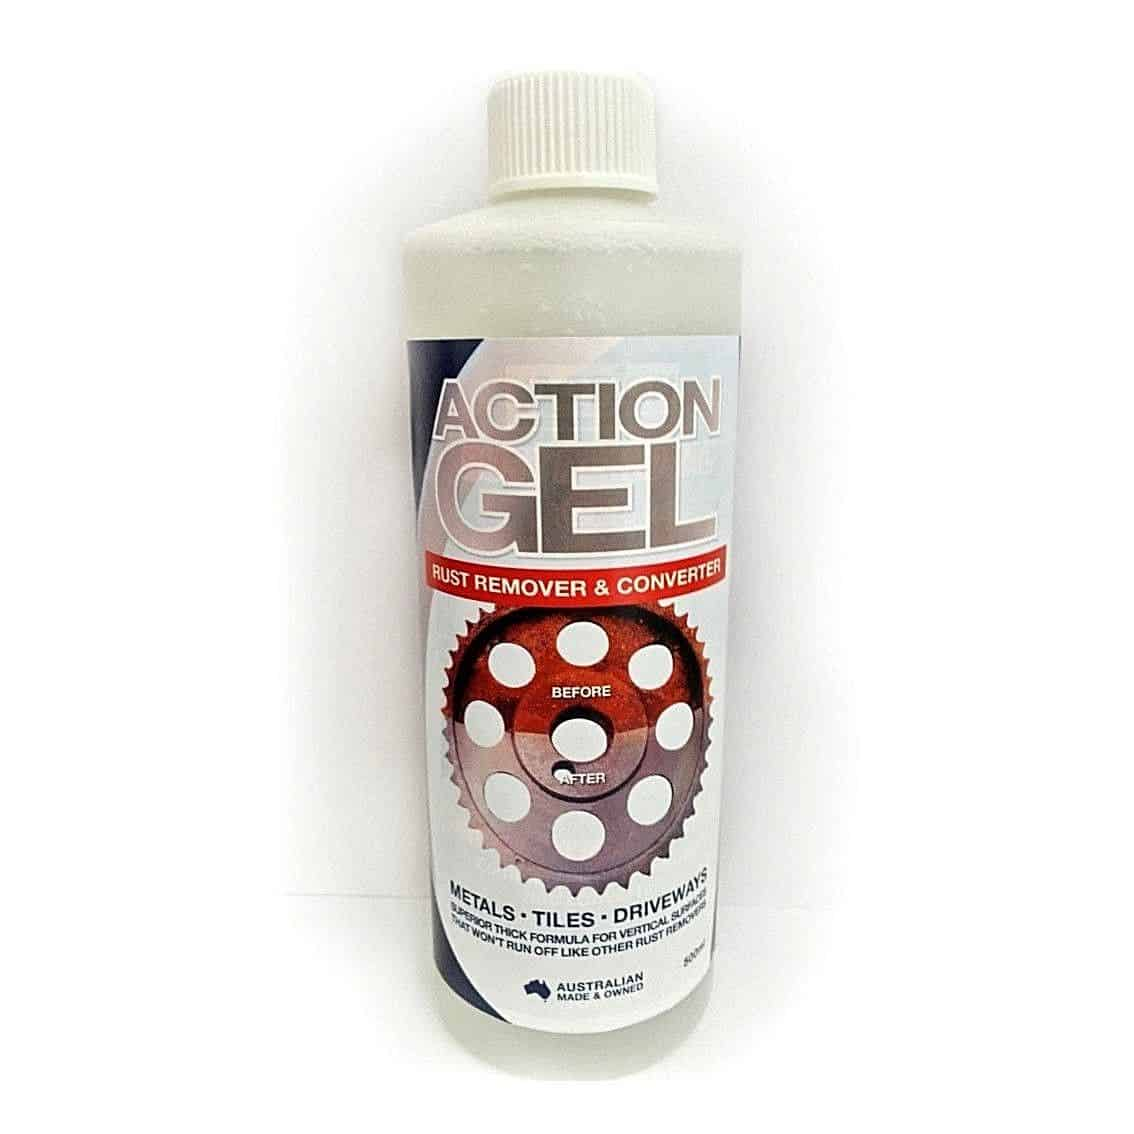 Action Gel RUST REMOVER & CONVERTER 250ml for Metals Tiles Driveways